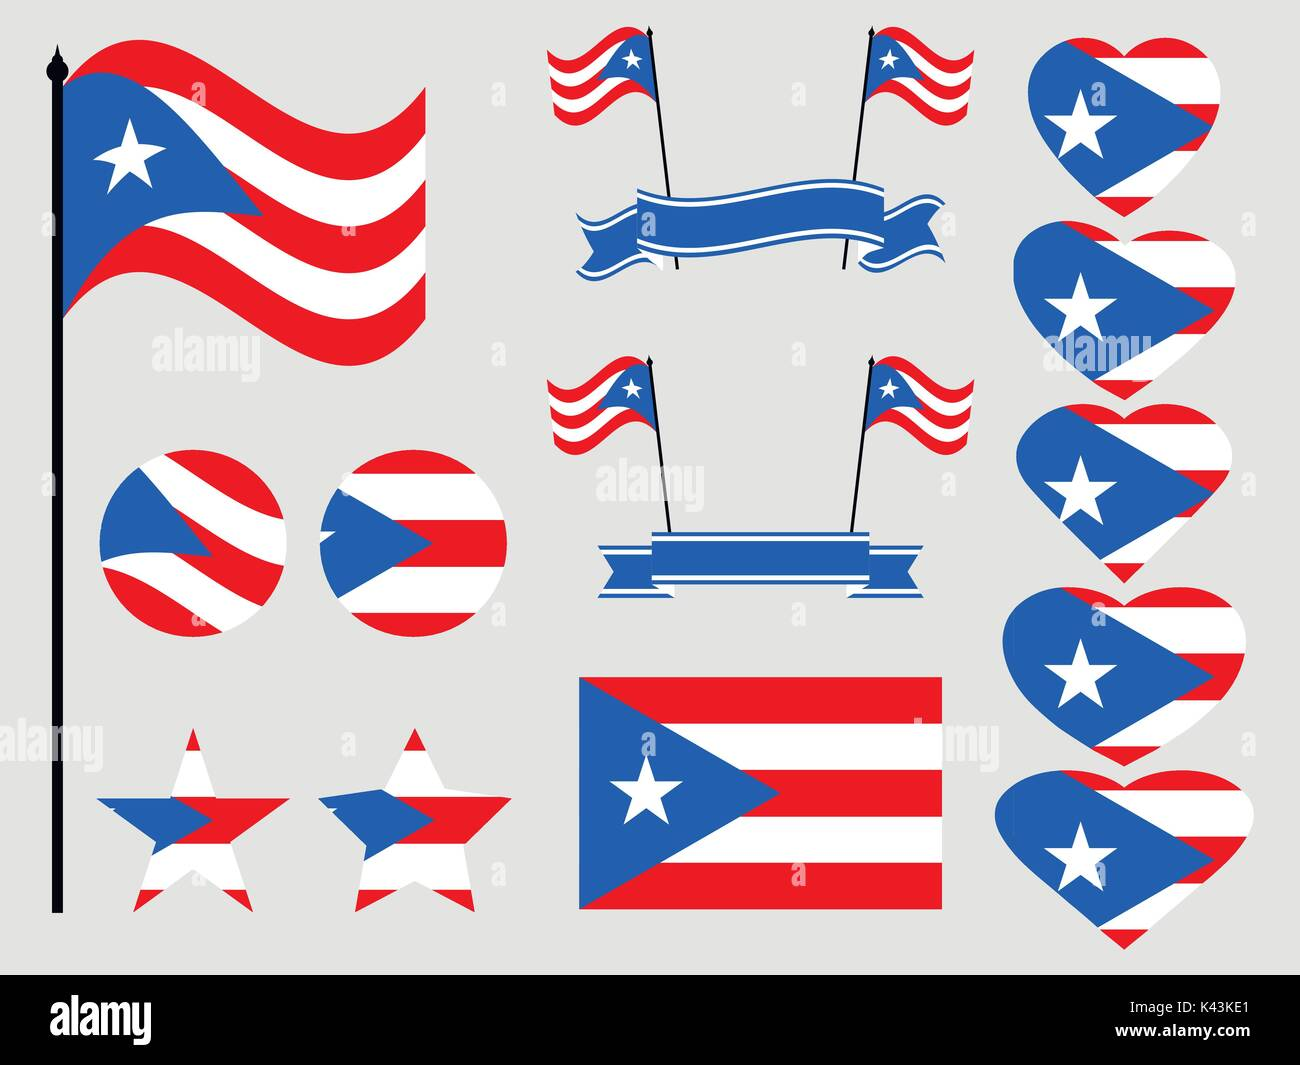 Puerto rico flag set symbols flag in heart vector illustration puerto rico flag set symbols flag in heart vector illustration biocorpaavc Image collections